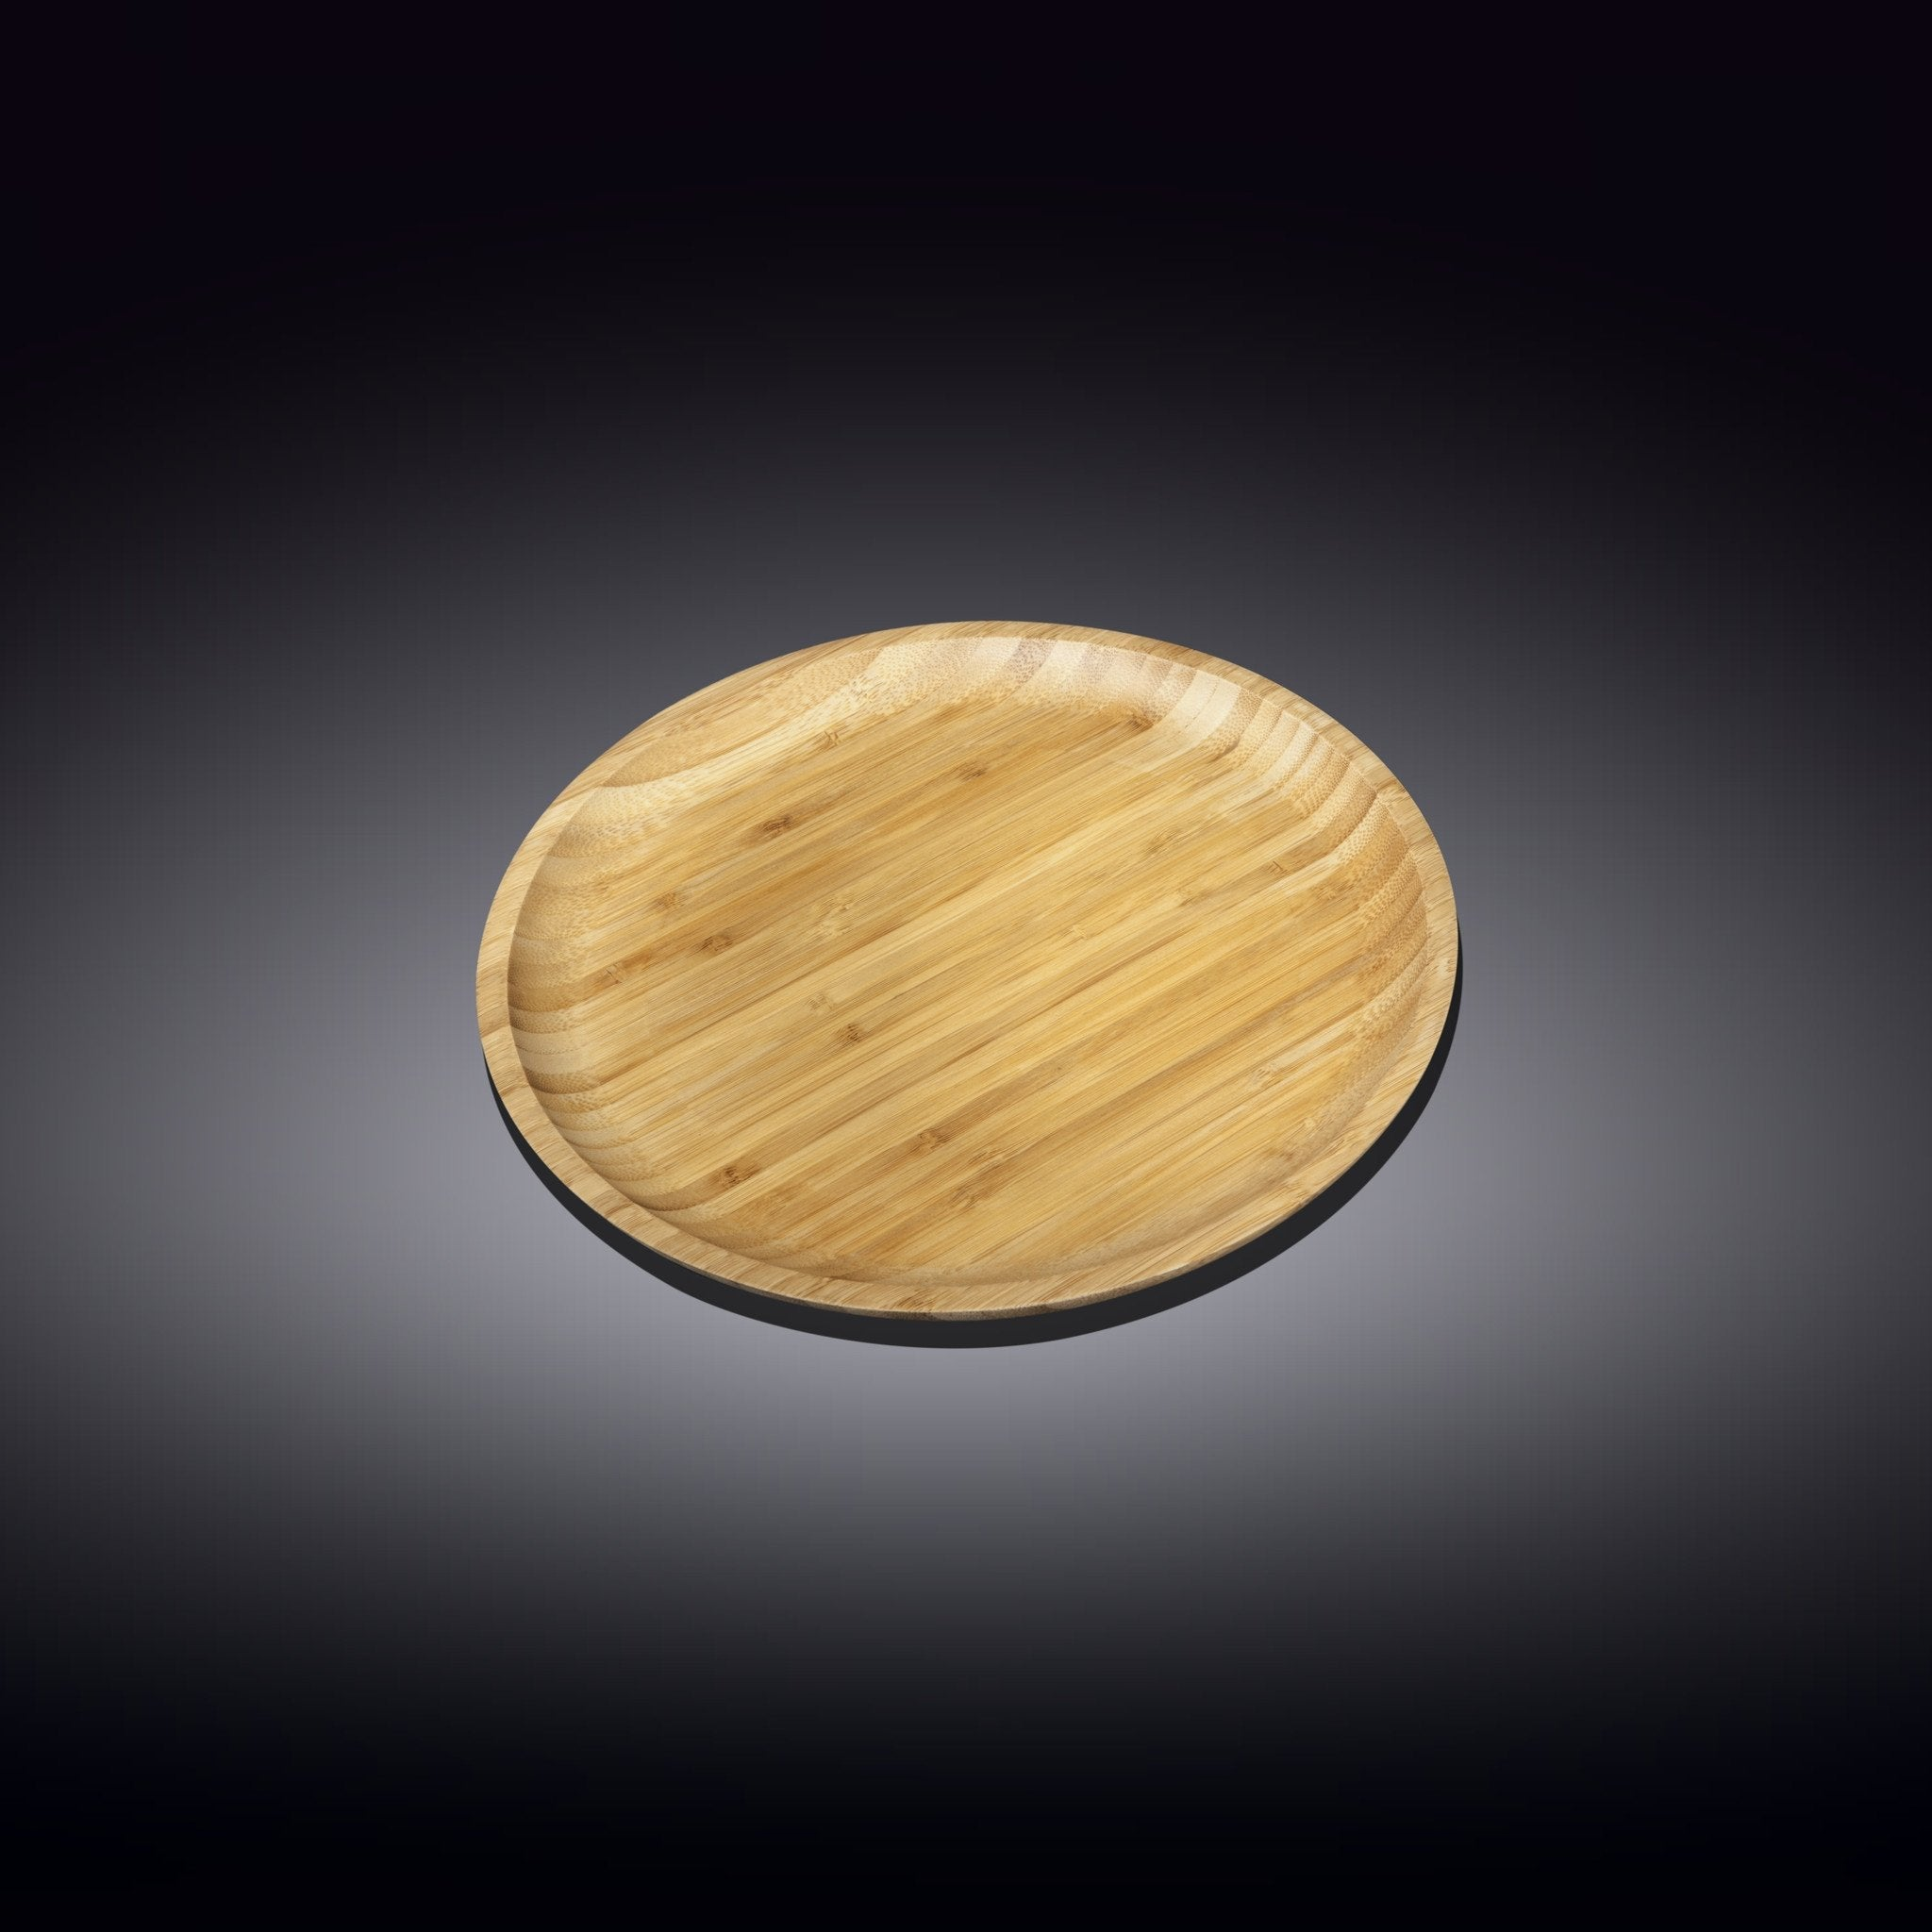 NATURAL BAMBOO PLATE 5"